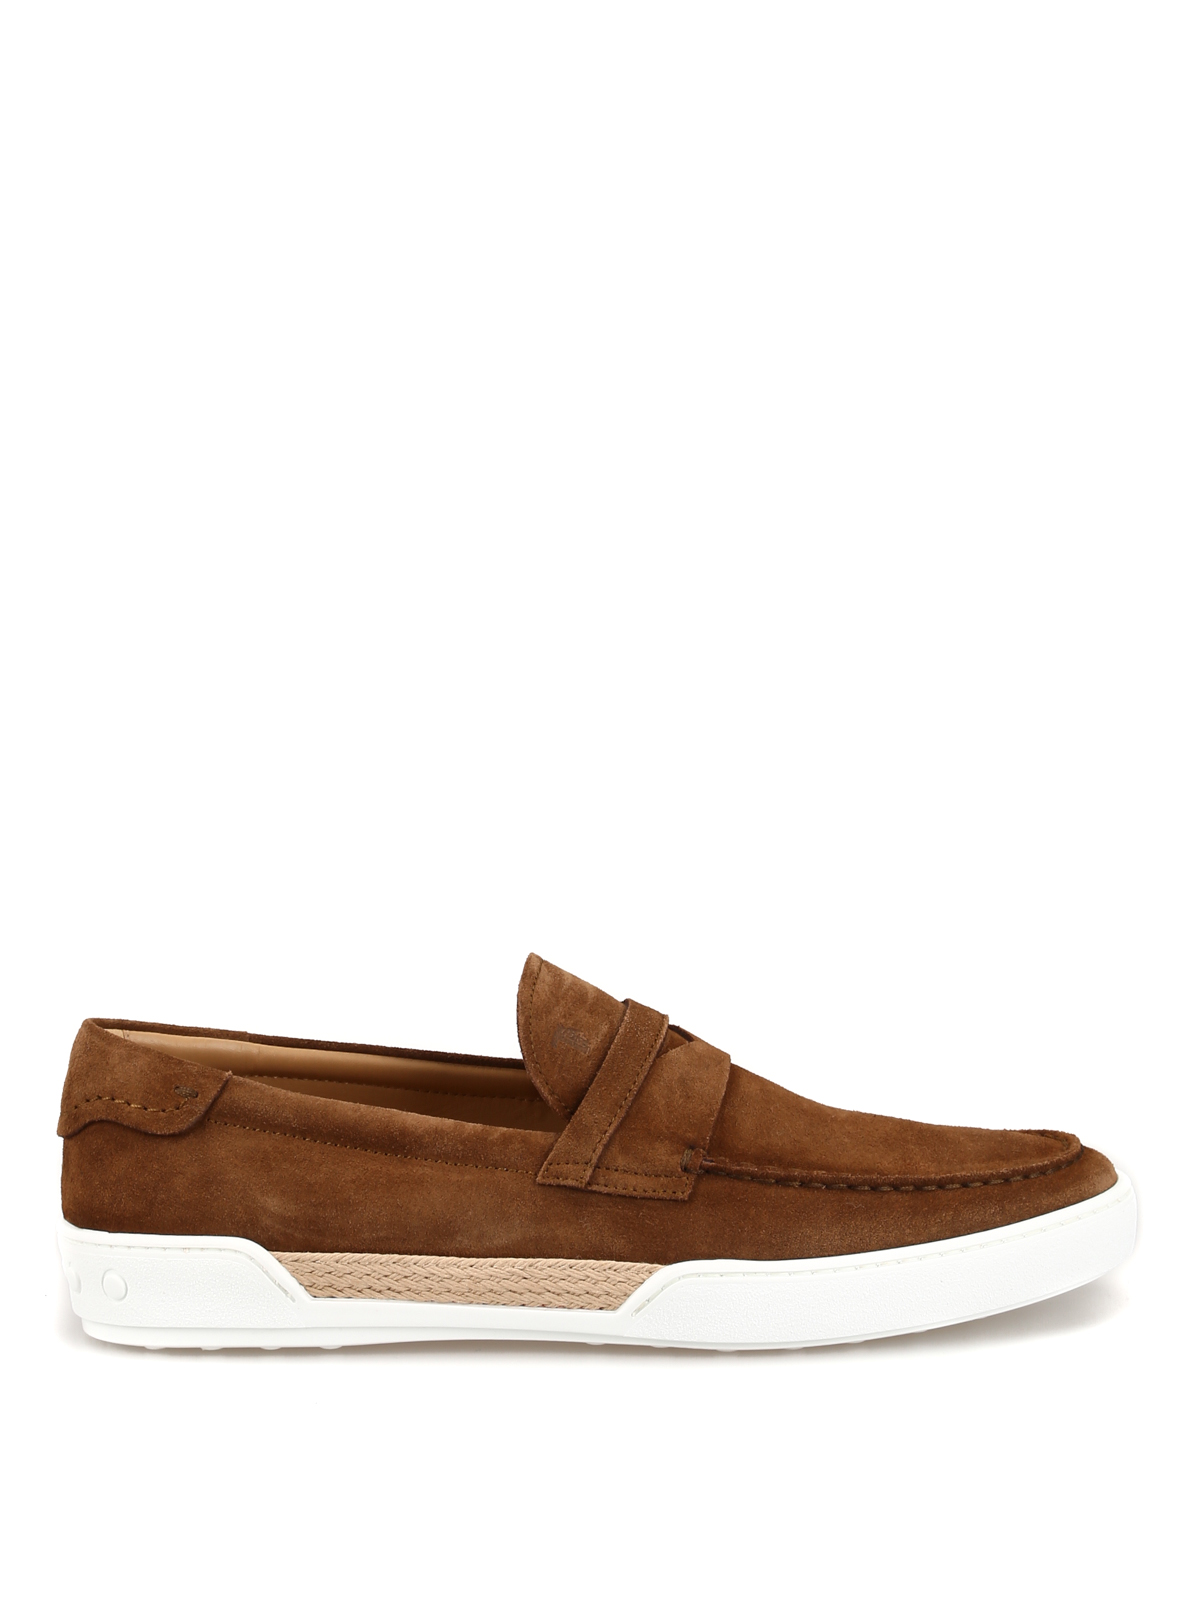 2622ebe3c4c Brown suede loafer style sneakers - TOD S - Paolo Fiorillo